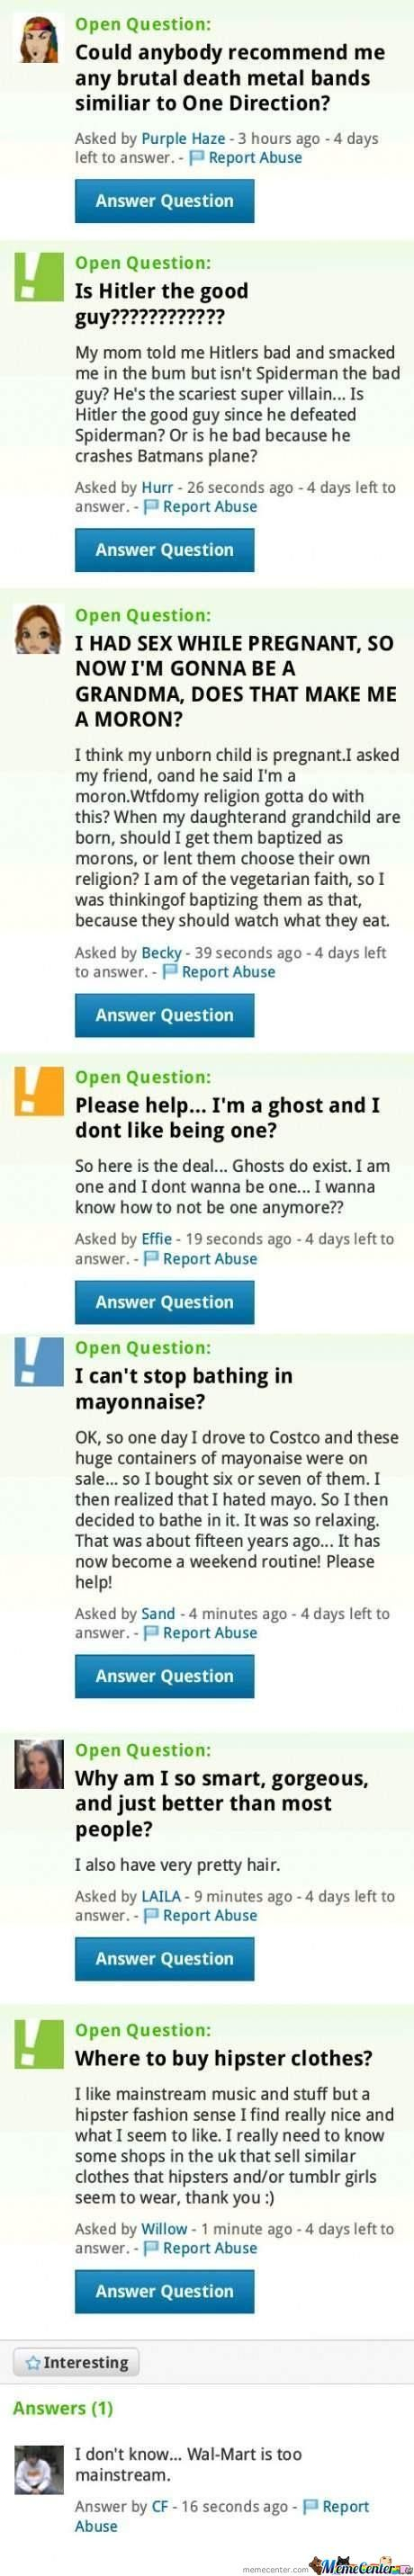 Meanwhile, On Yahoo Answers